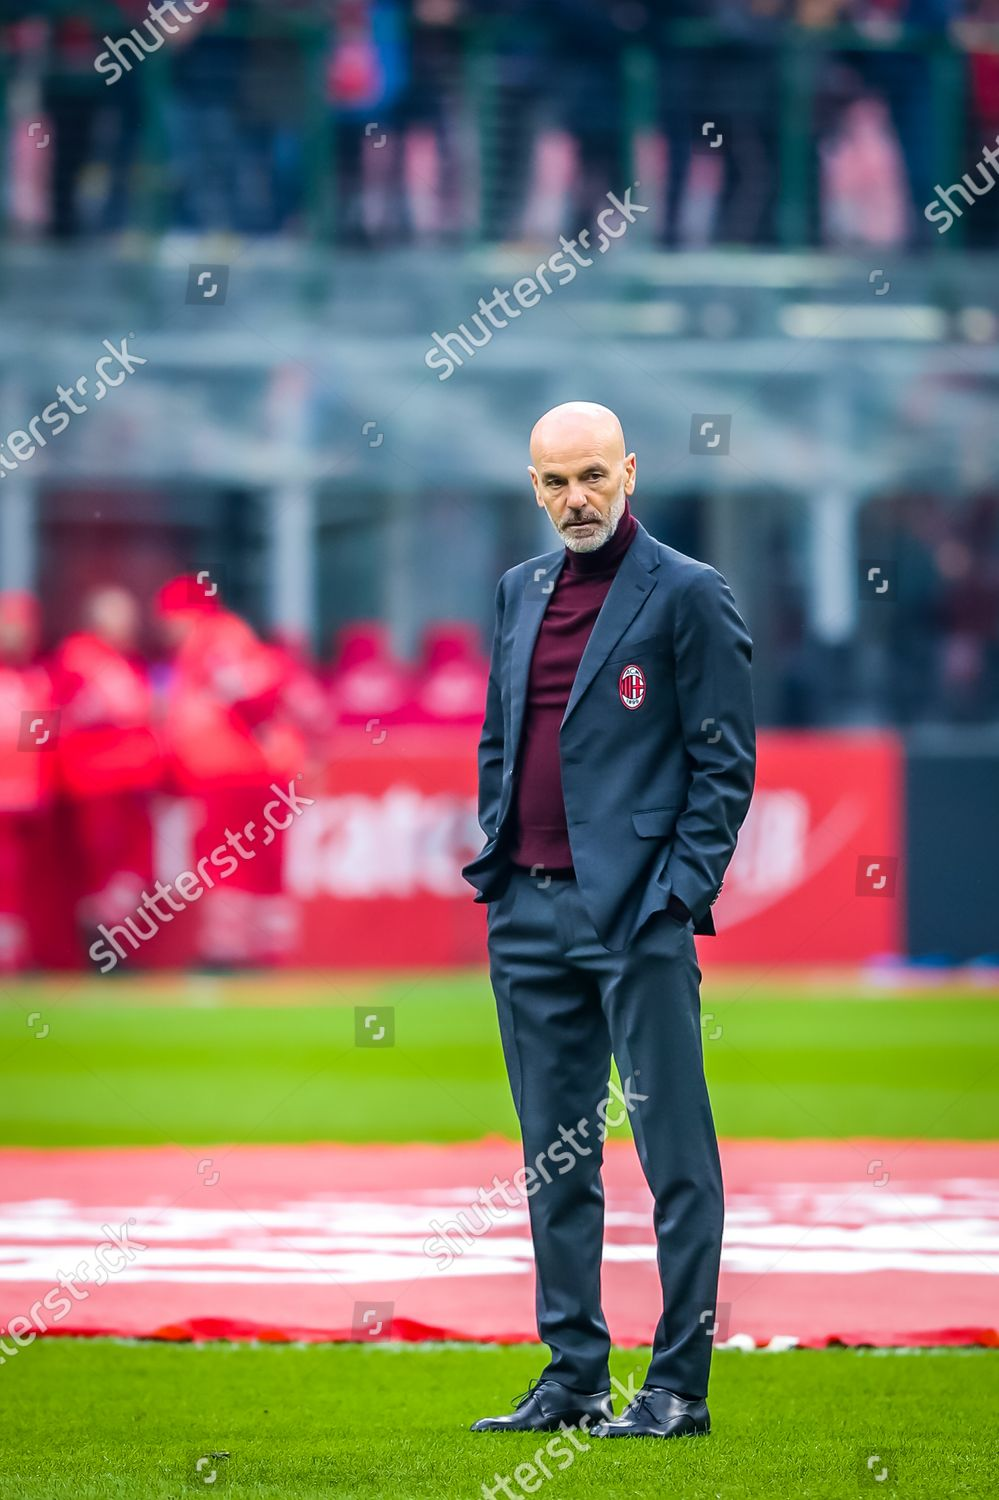 Coach Stefano Pioli Ac Milan Editorial Stock Photo Stock Image Shutterstock